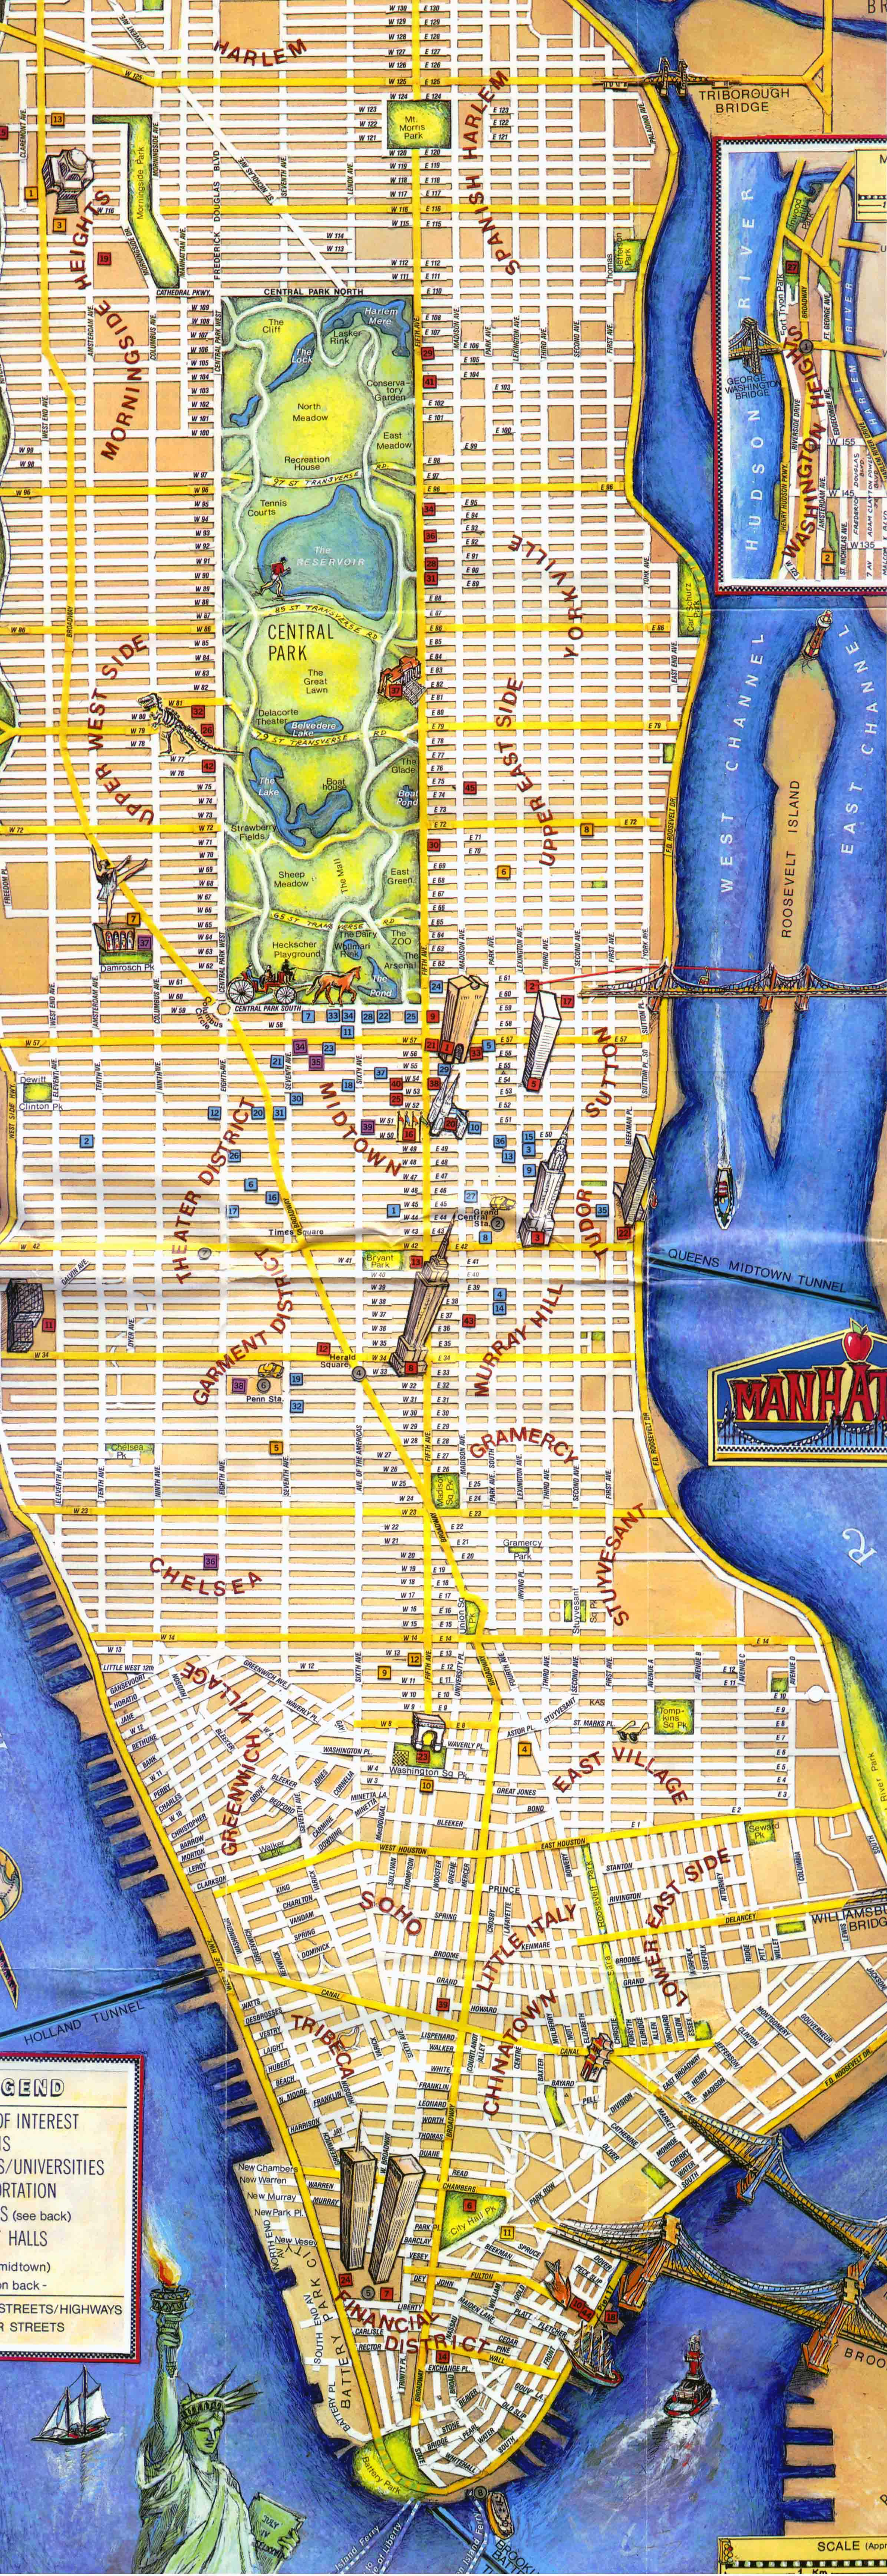 Large tourist map of Manhattan Manhattan large tourist map – New York Tourist Maps